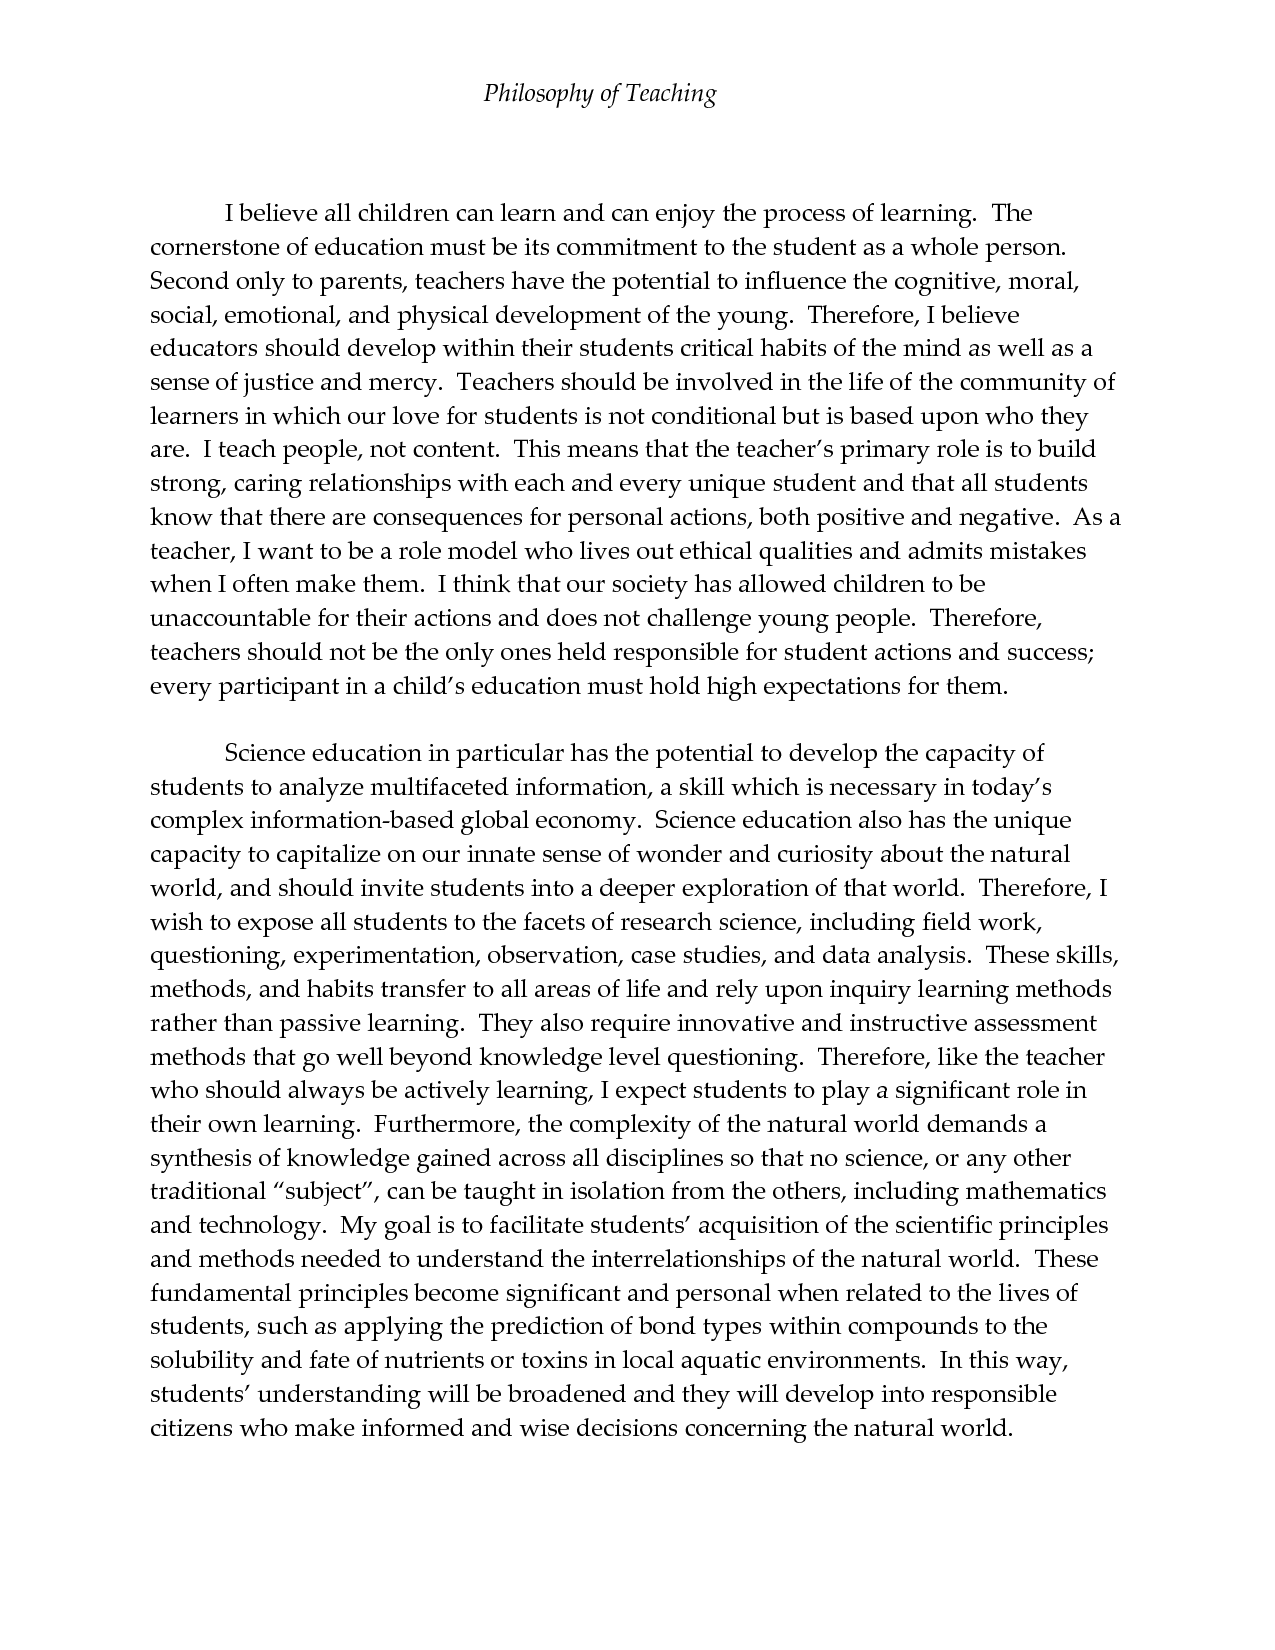 003 Philosophy Of Teaching Essay Dreaded My Personal And Learning Education Pdf Full